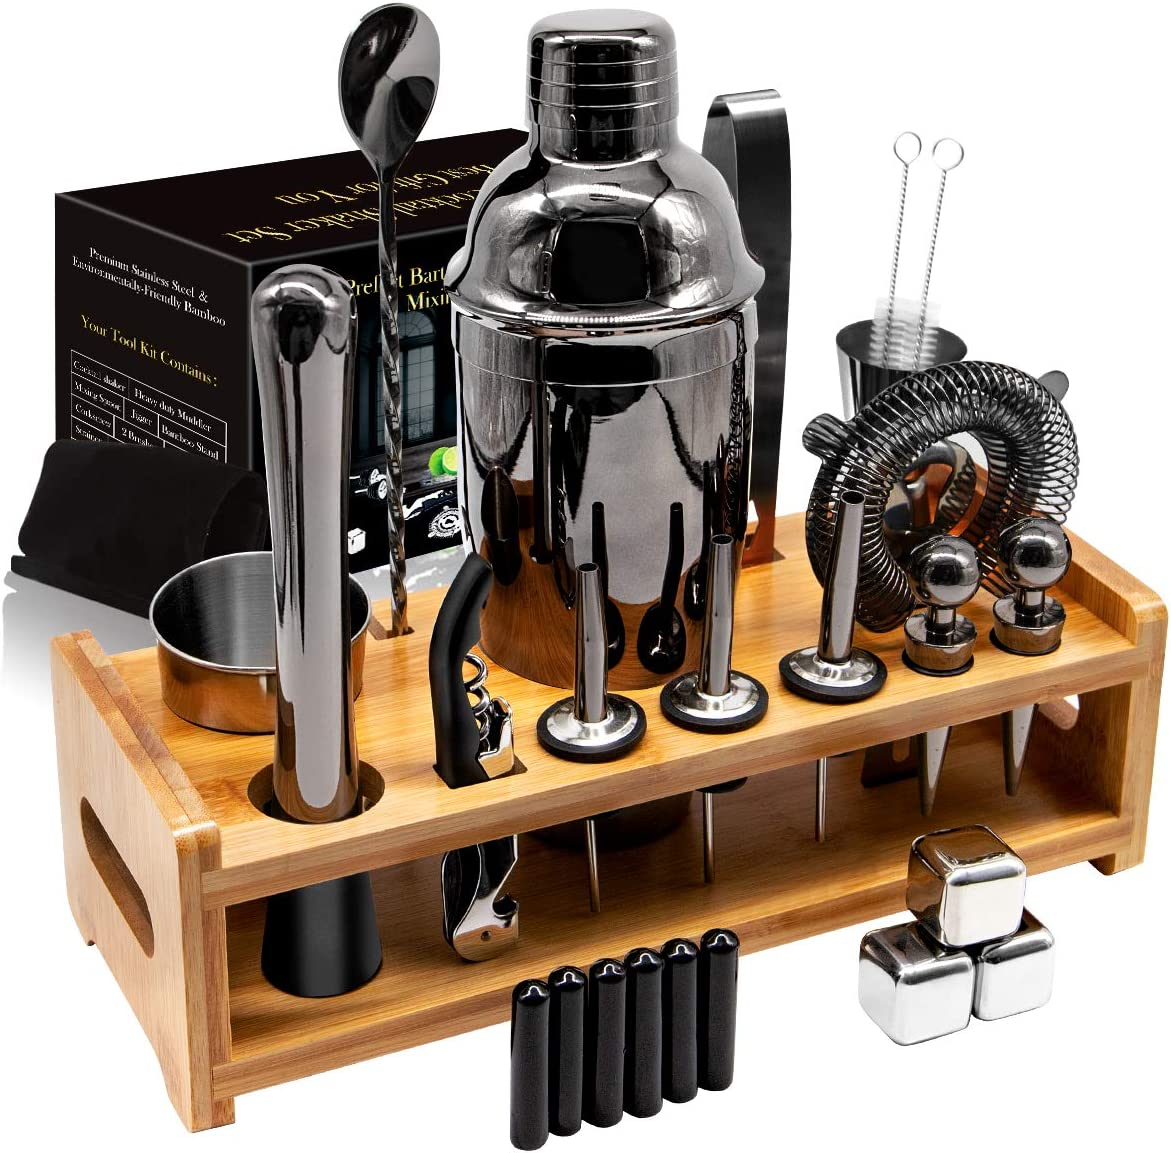 26Pcs Stainless Steel Cocktail Bar Tool Set,Perfect Bar Accessories for Home Bar Set and Martini Mixer Kit with Bamboo Stand for Making Awesome Drink Mixing Experience Ideal Gift Set (Black)